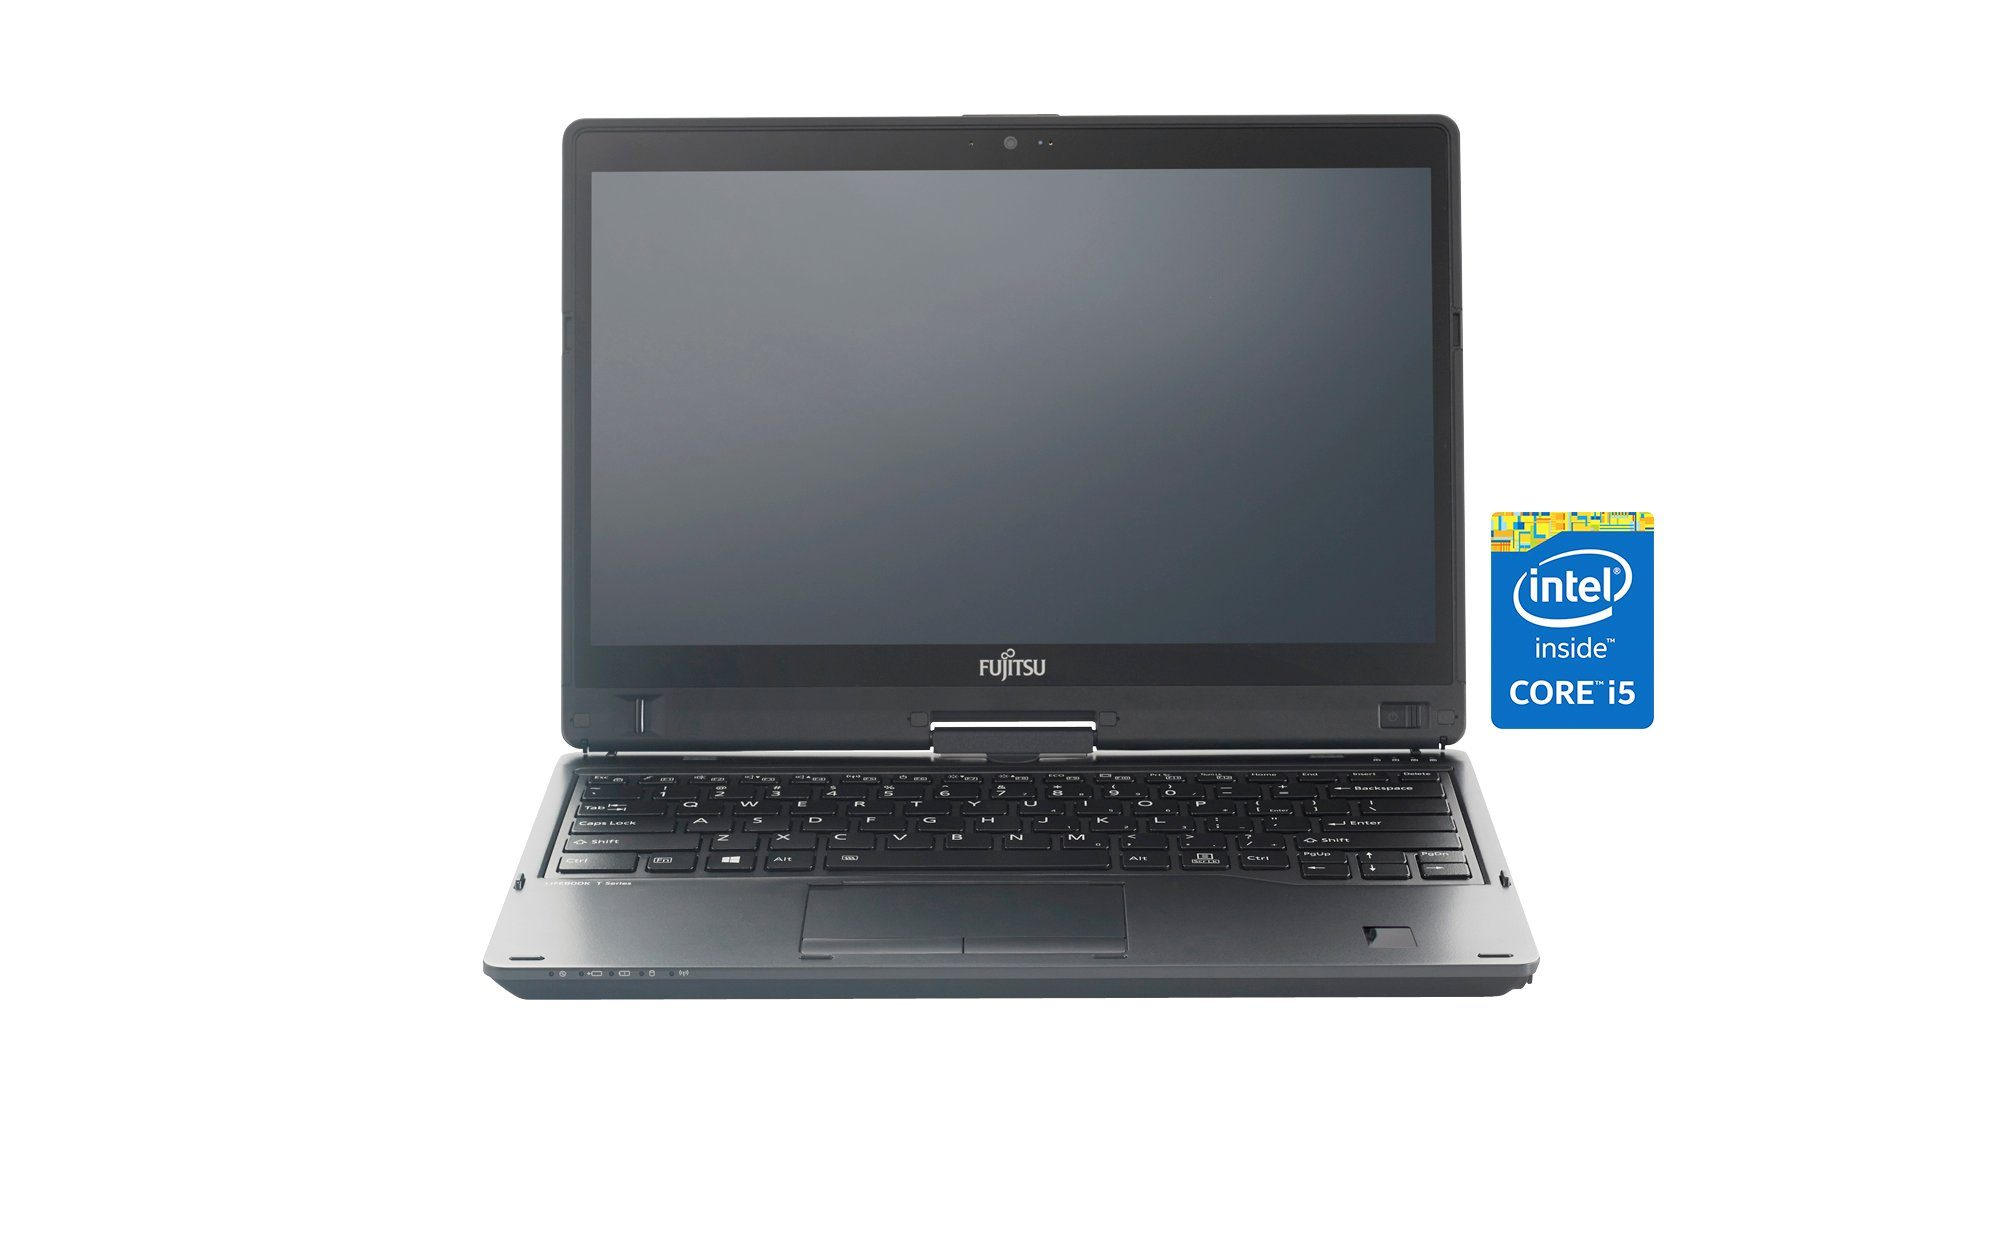 Fujitsu Business & Professional »LIFEBOOK T937 13.3 FHD I5-7200«